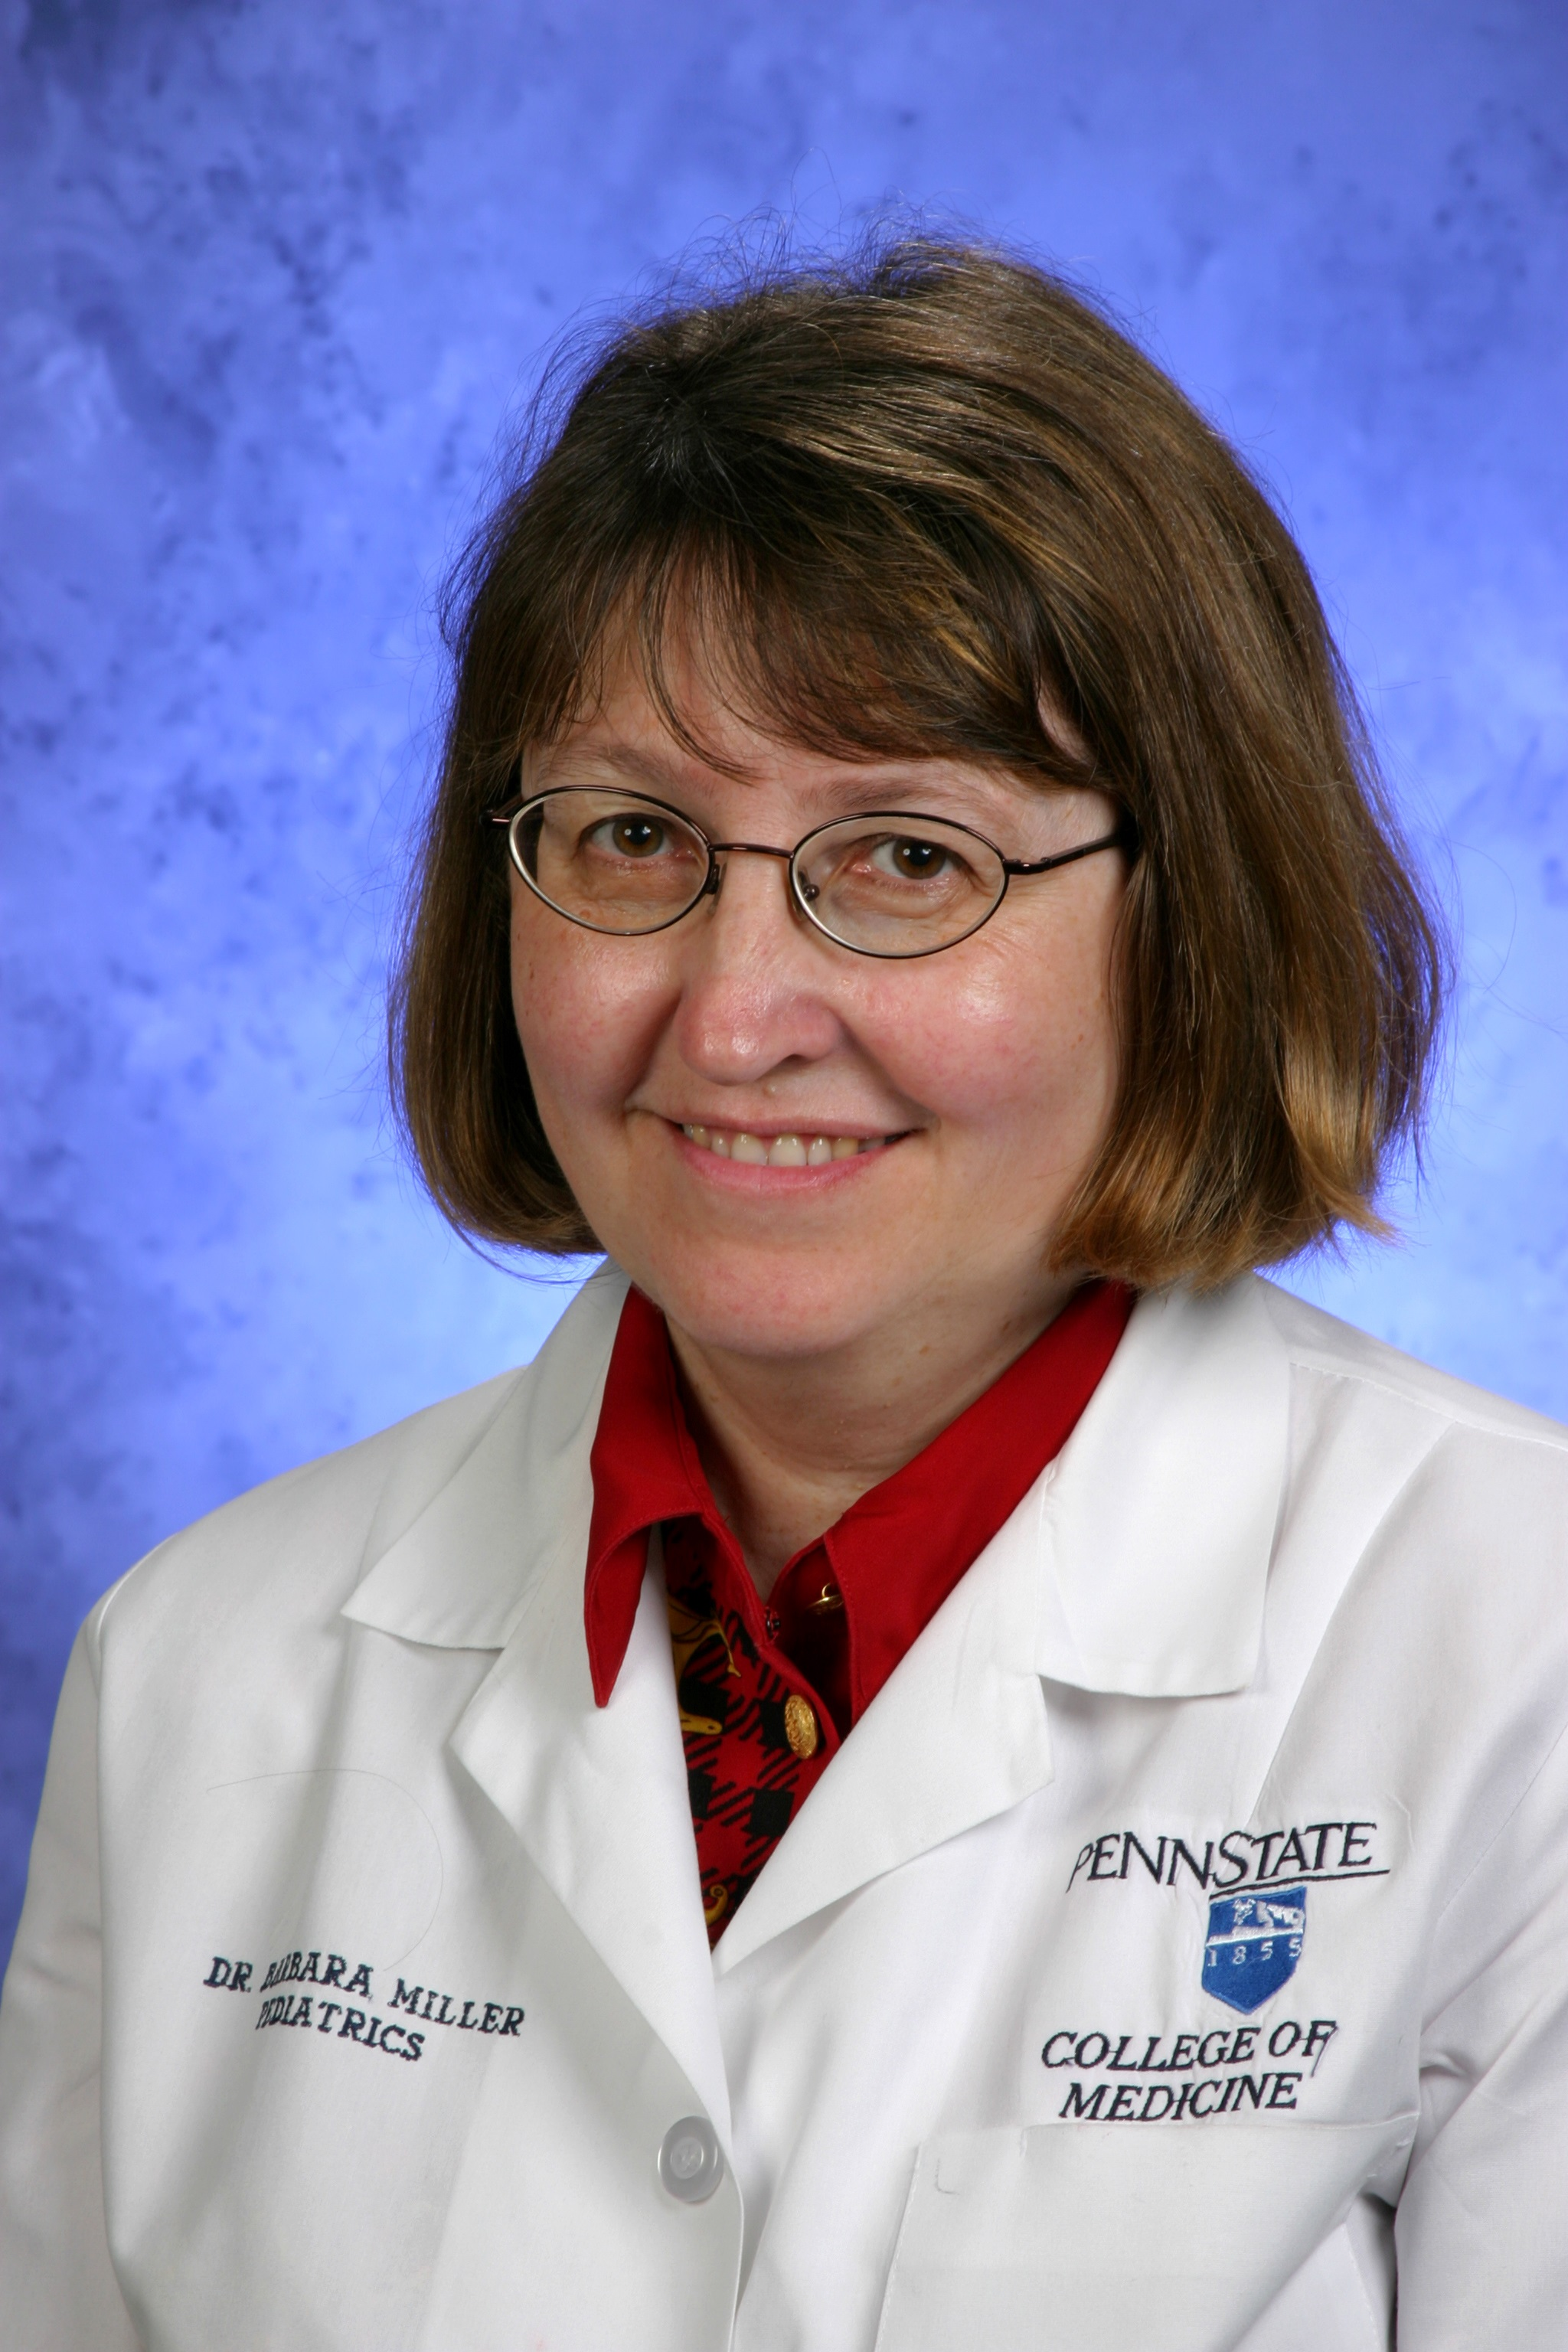 Woman with brown hair and glasses wears lab coat with Penn State College of Medicine logo.